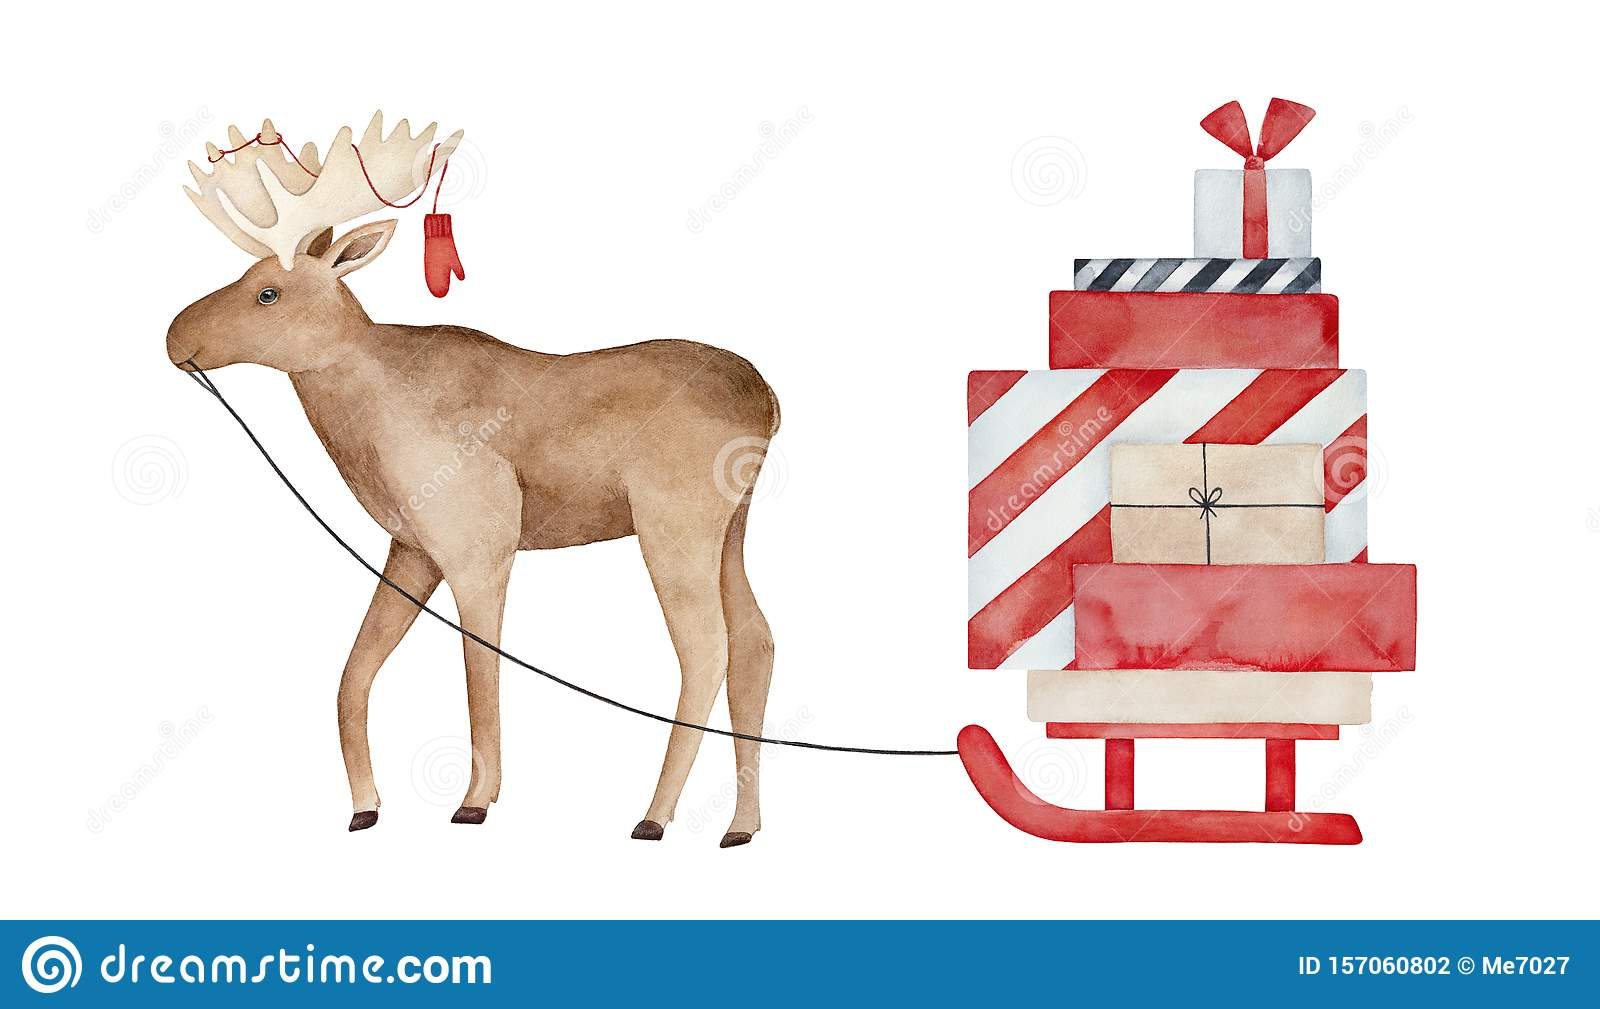 Huge brown moose with knitted mitten on antlers, carrying sled with many festive gift boxes.